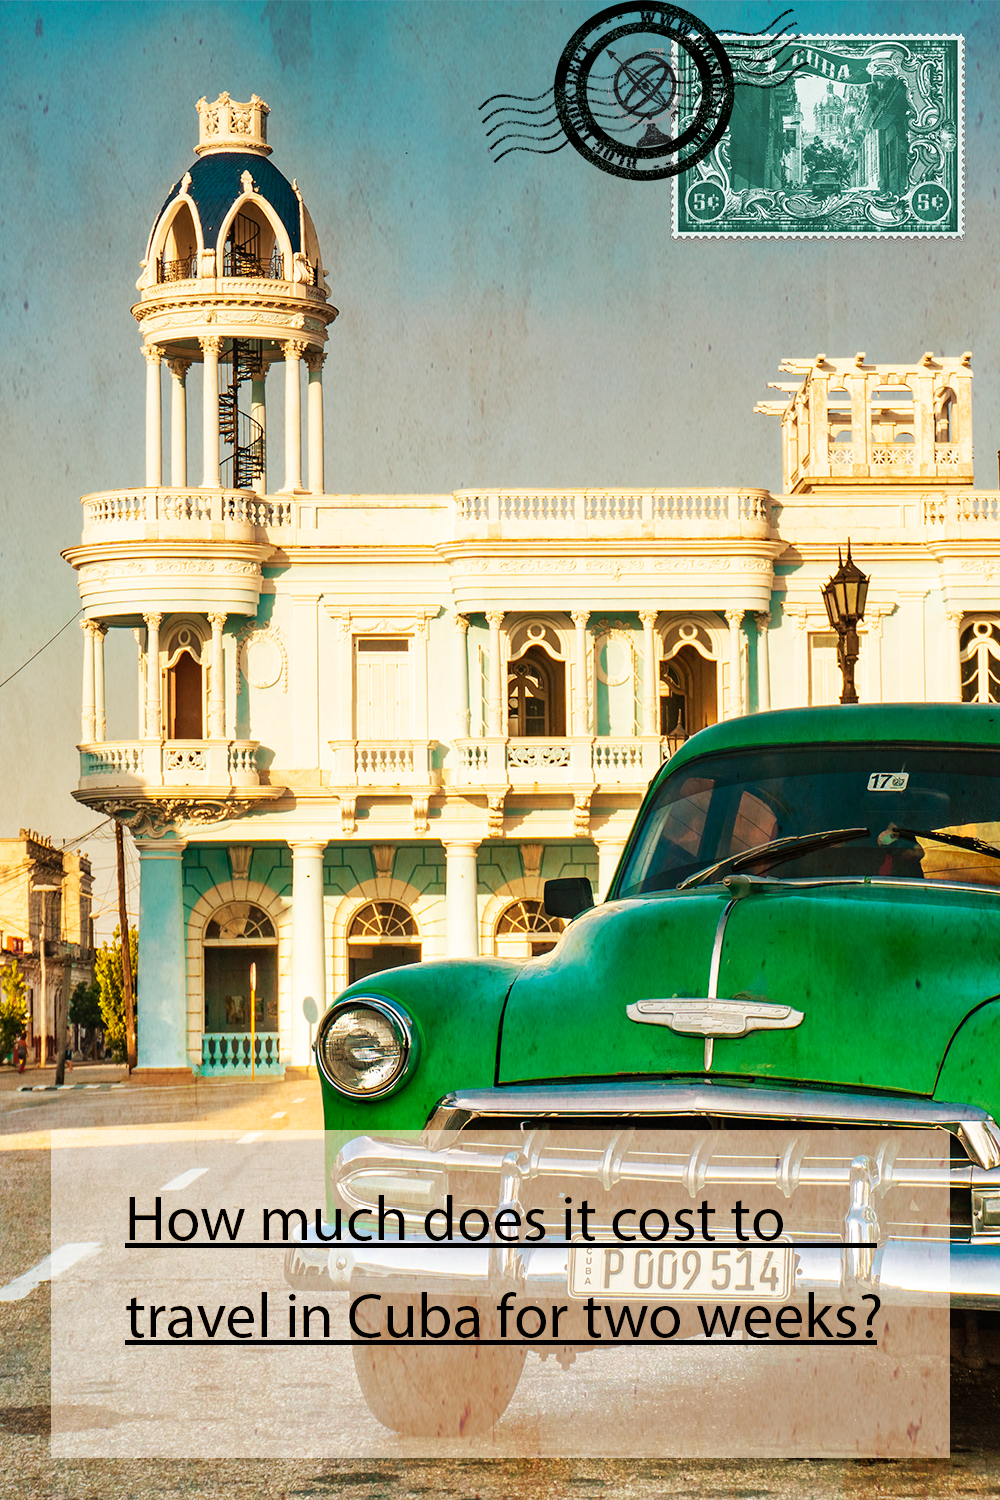 How much does it cost to travel in Cuba for two weeks?